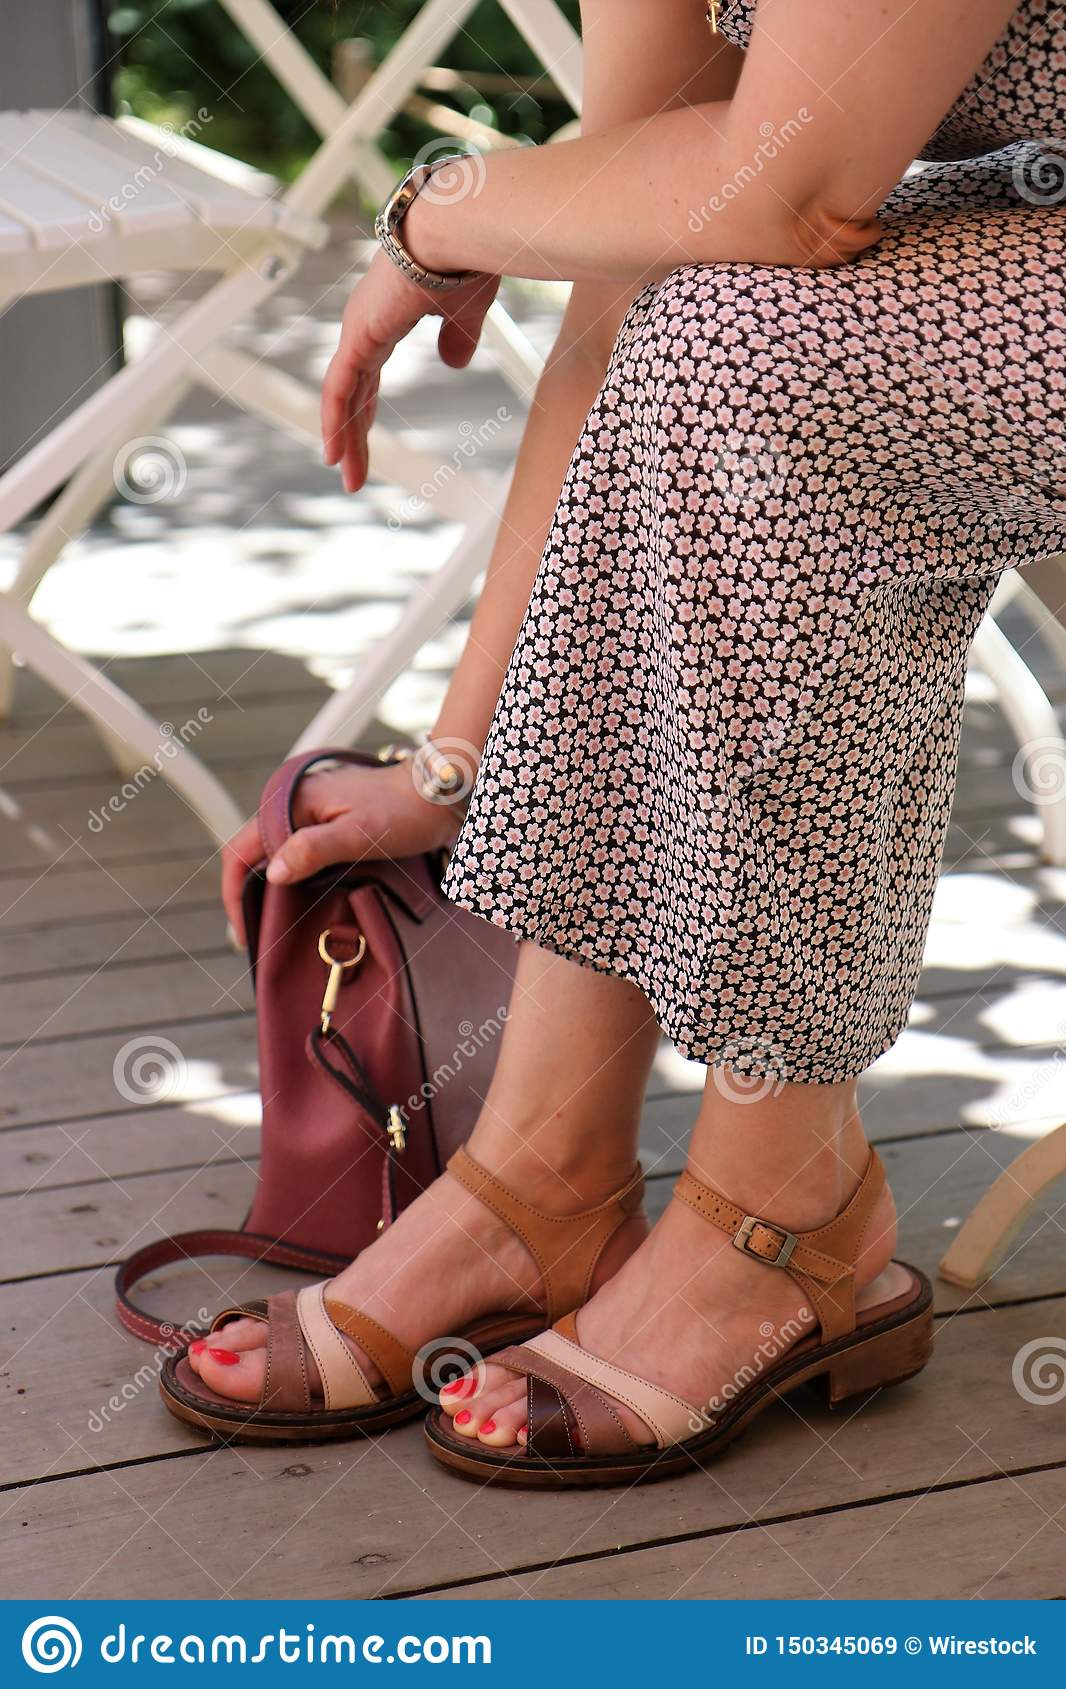 Female in a dress sitting with her hand on her bag